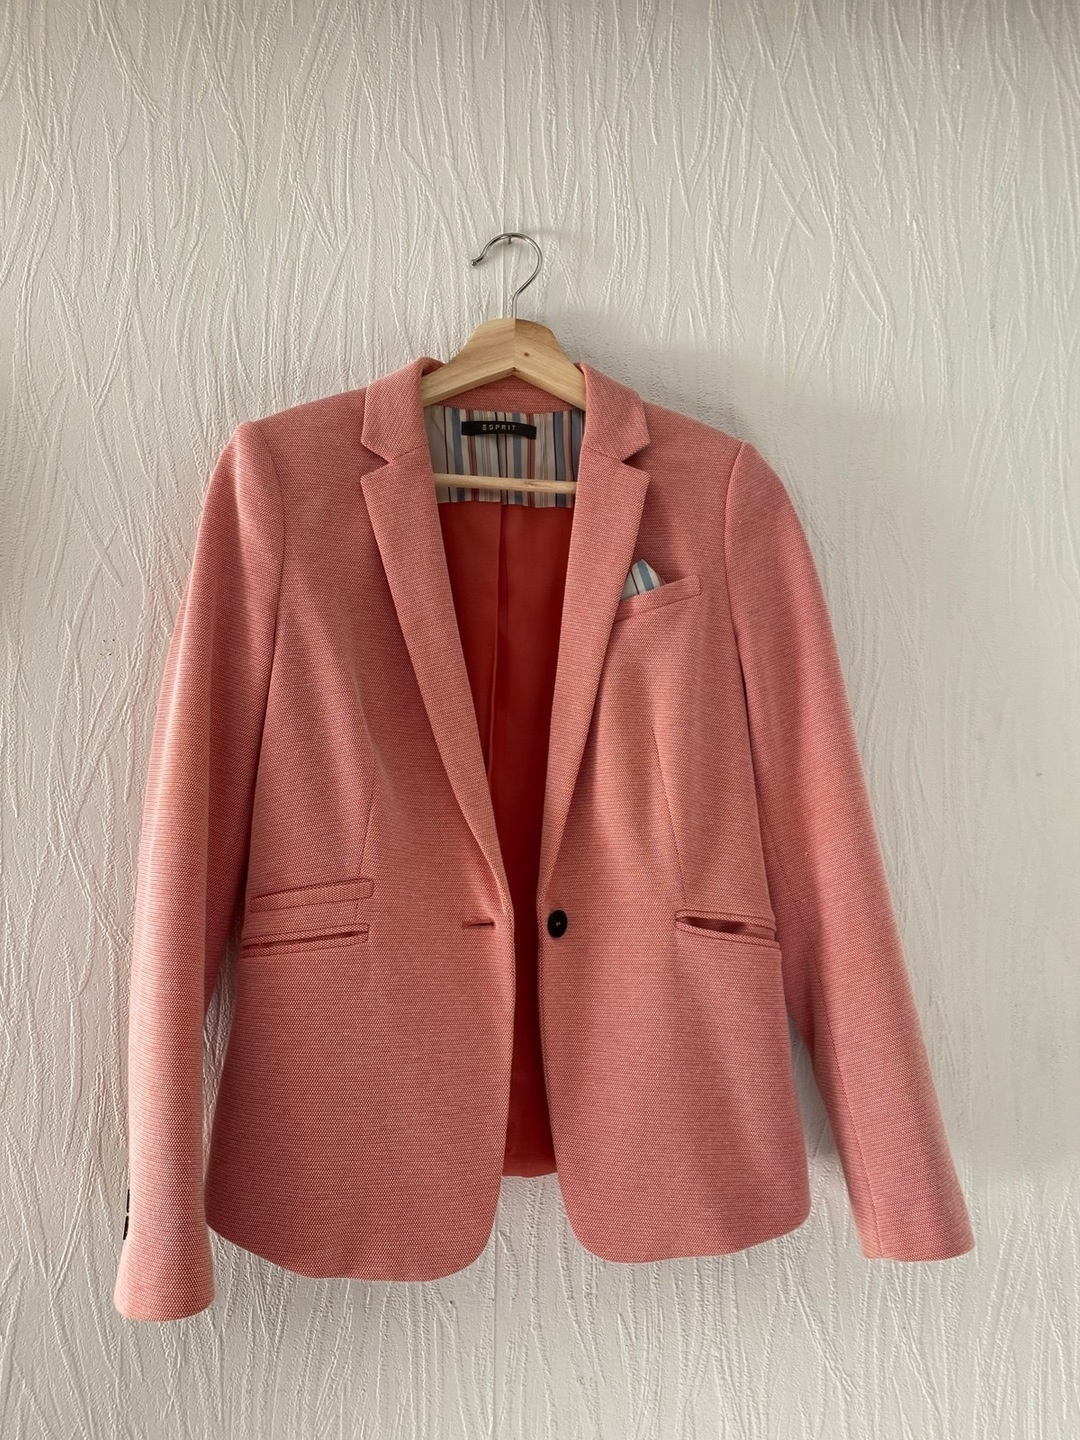 Women's blazers & suits - ESPRIT photo 1